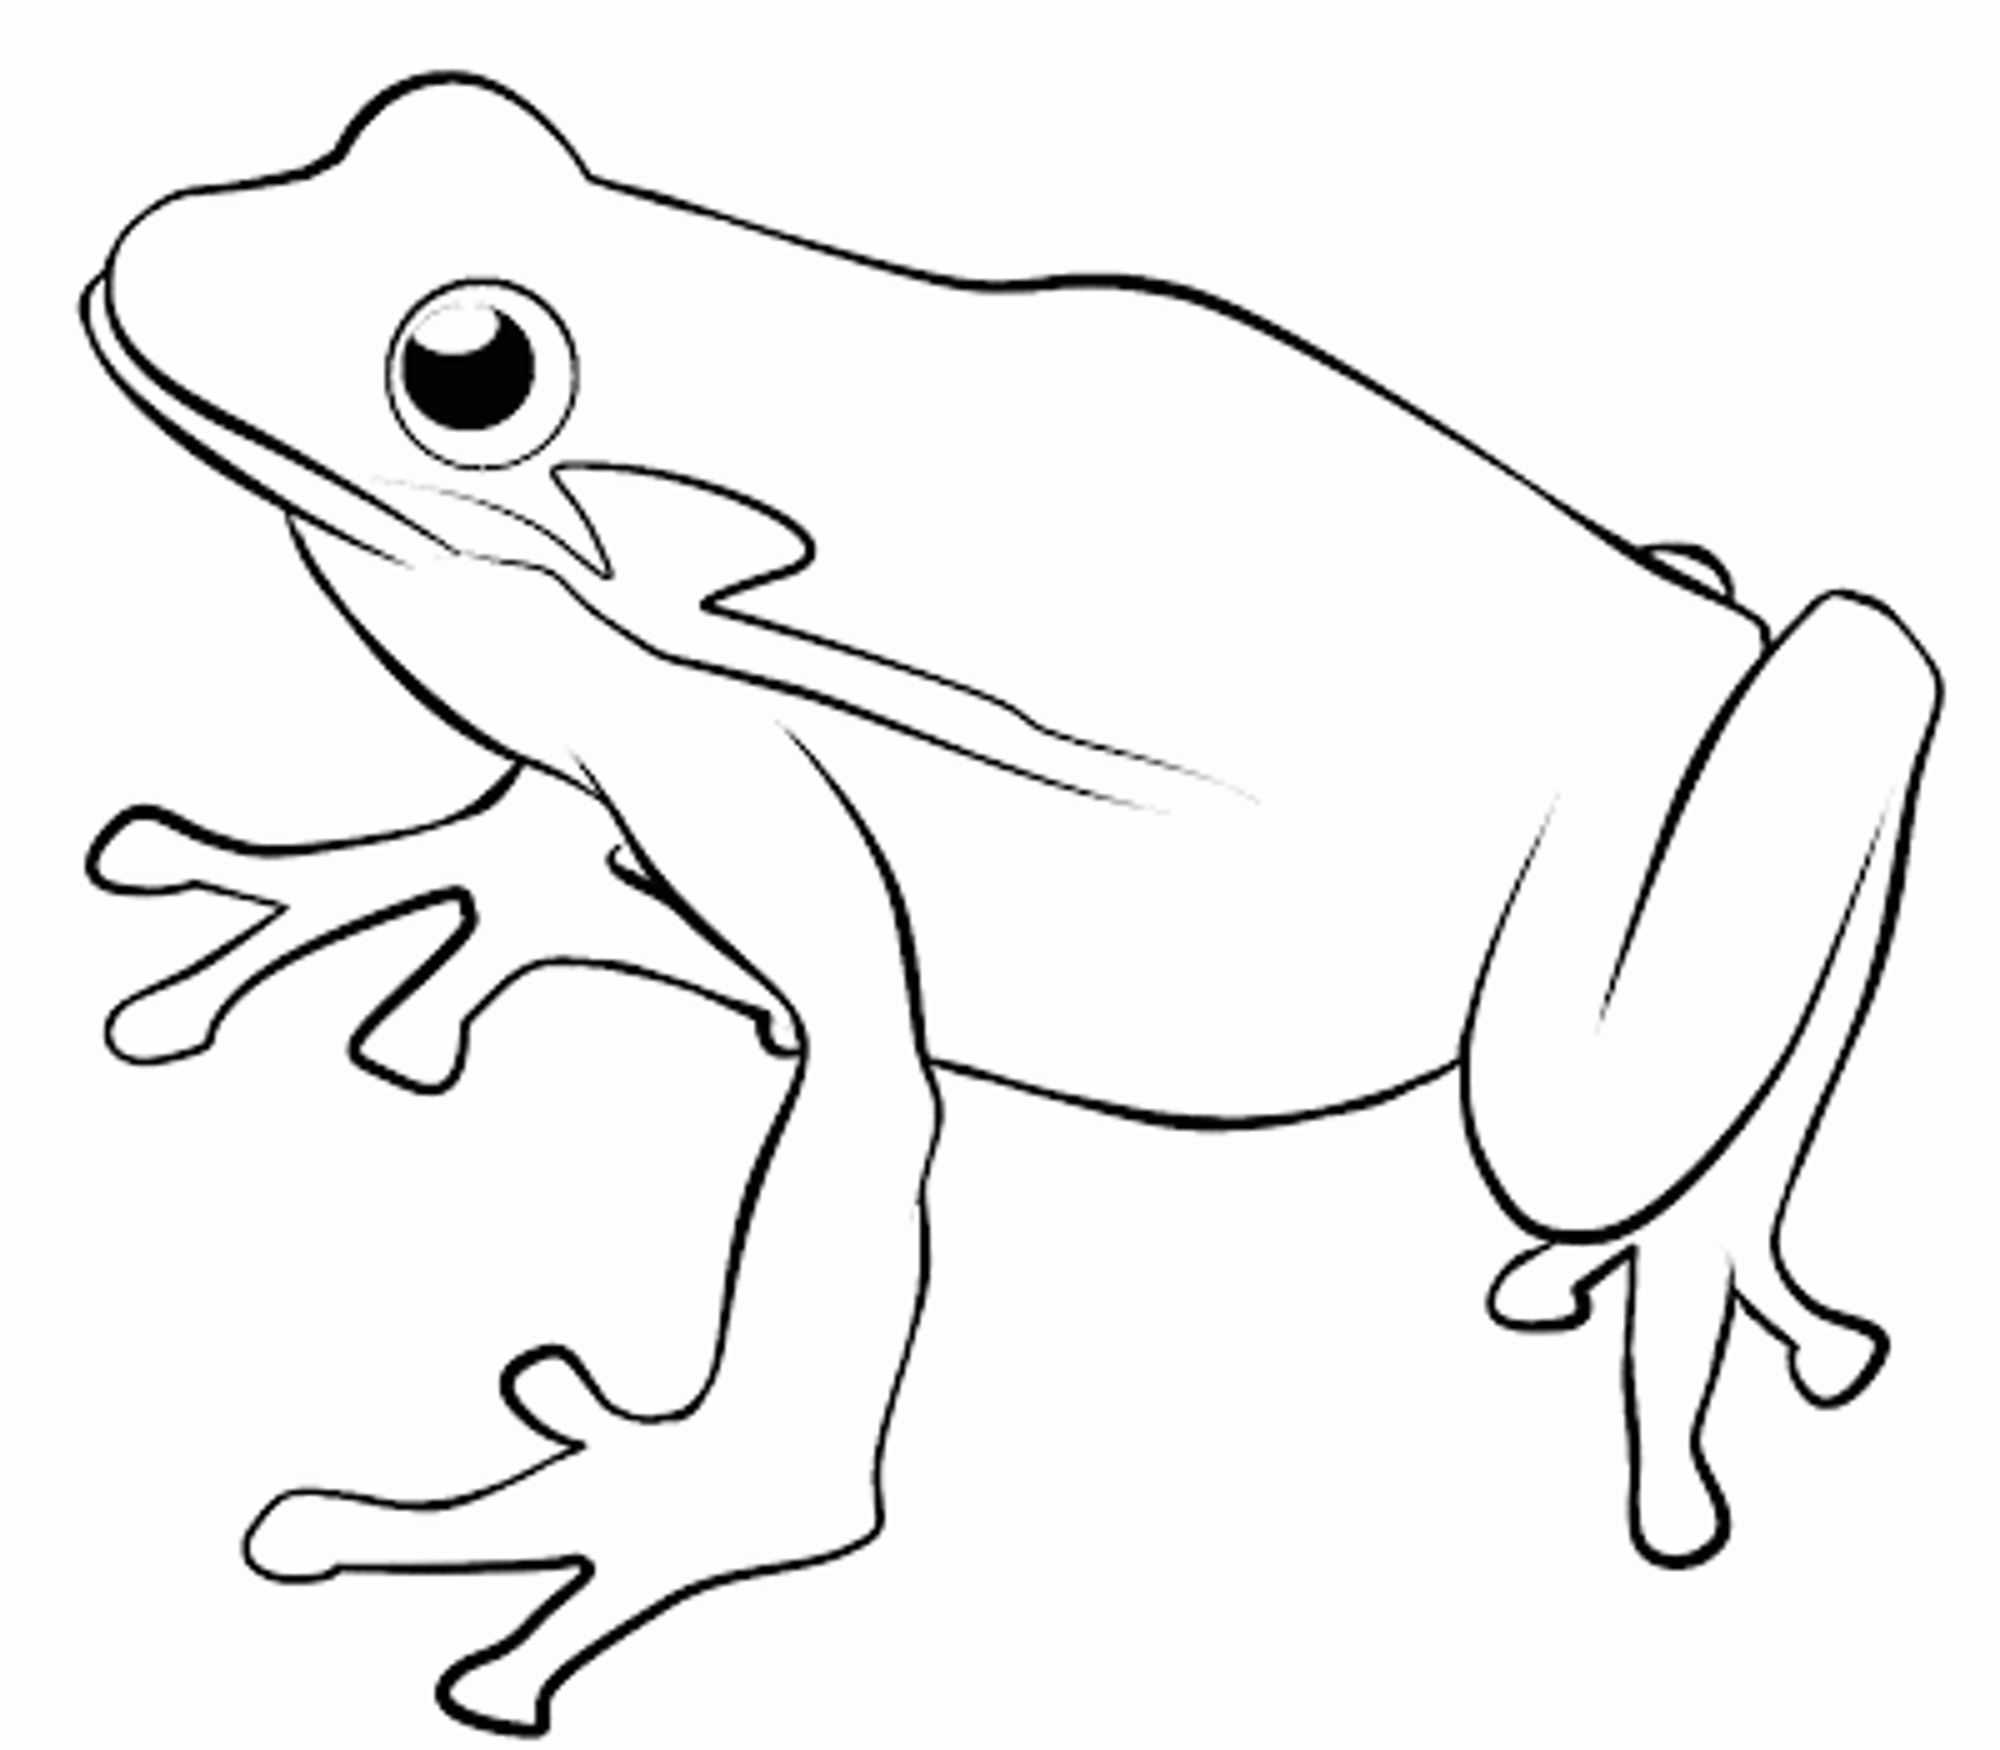 Line Drawing Of Frogs at GetDrawings.com.